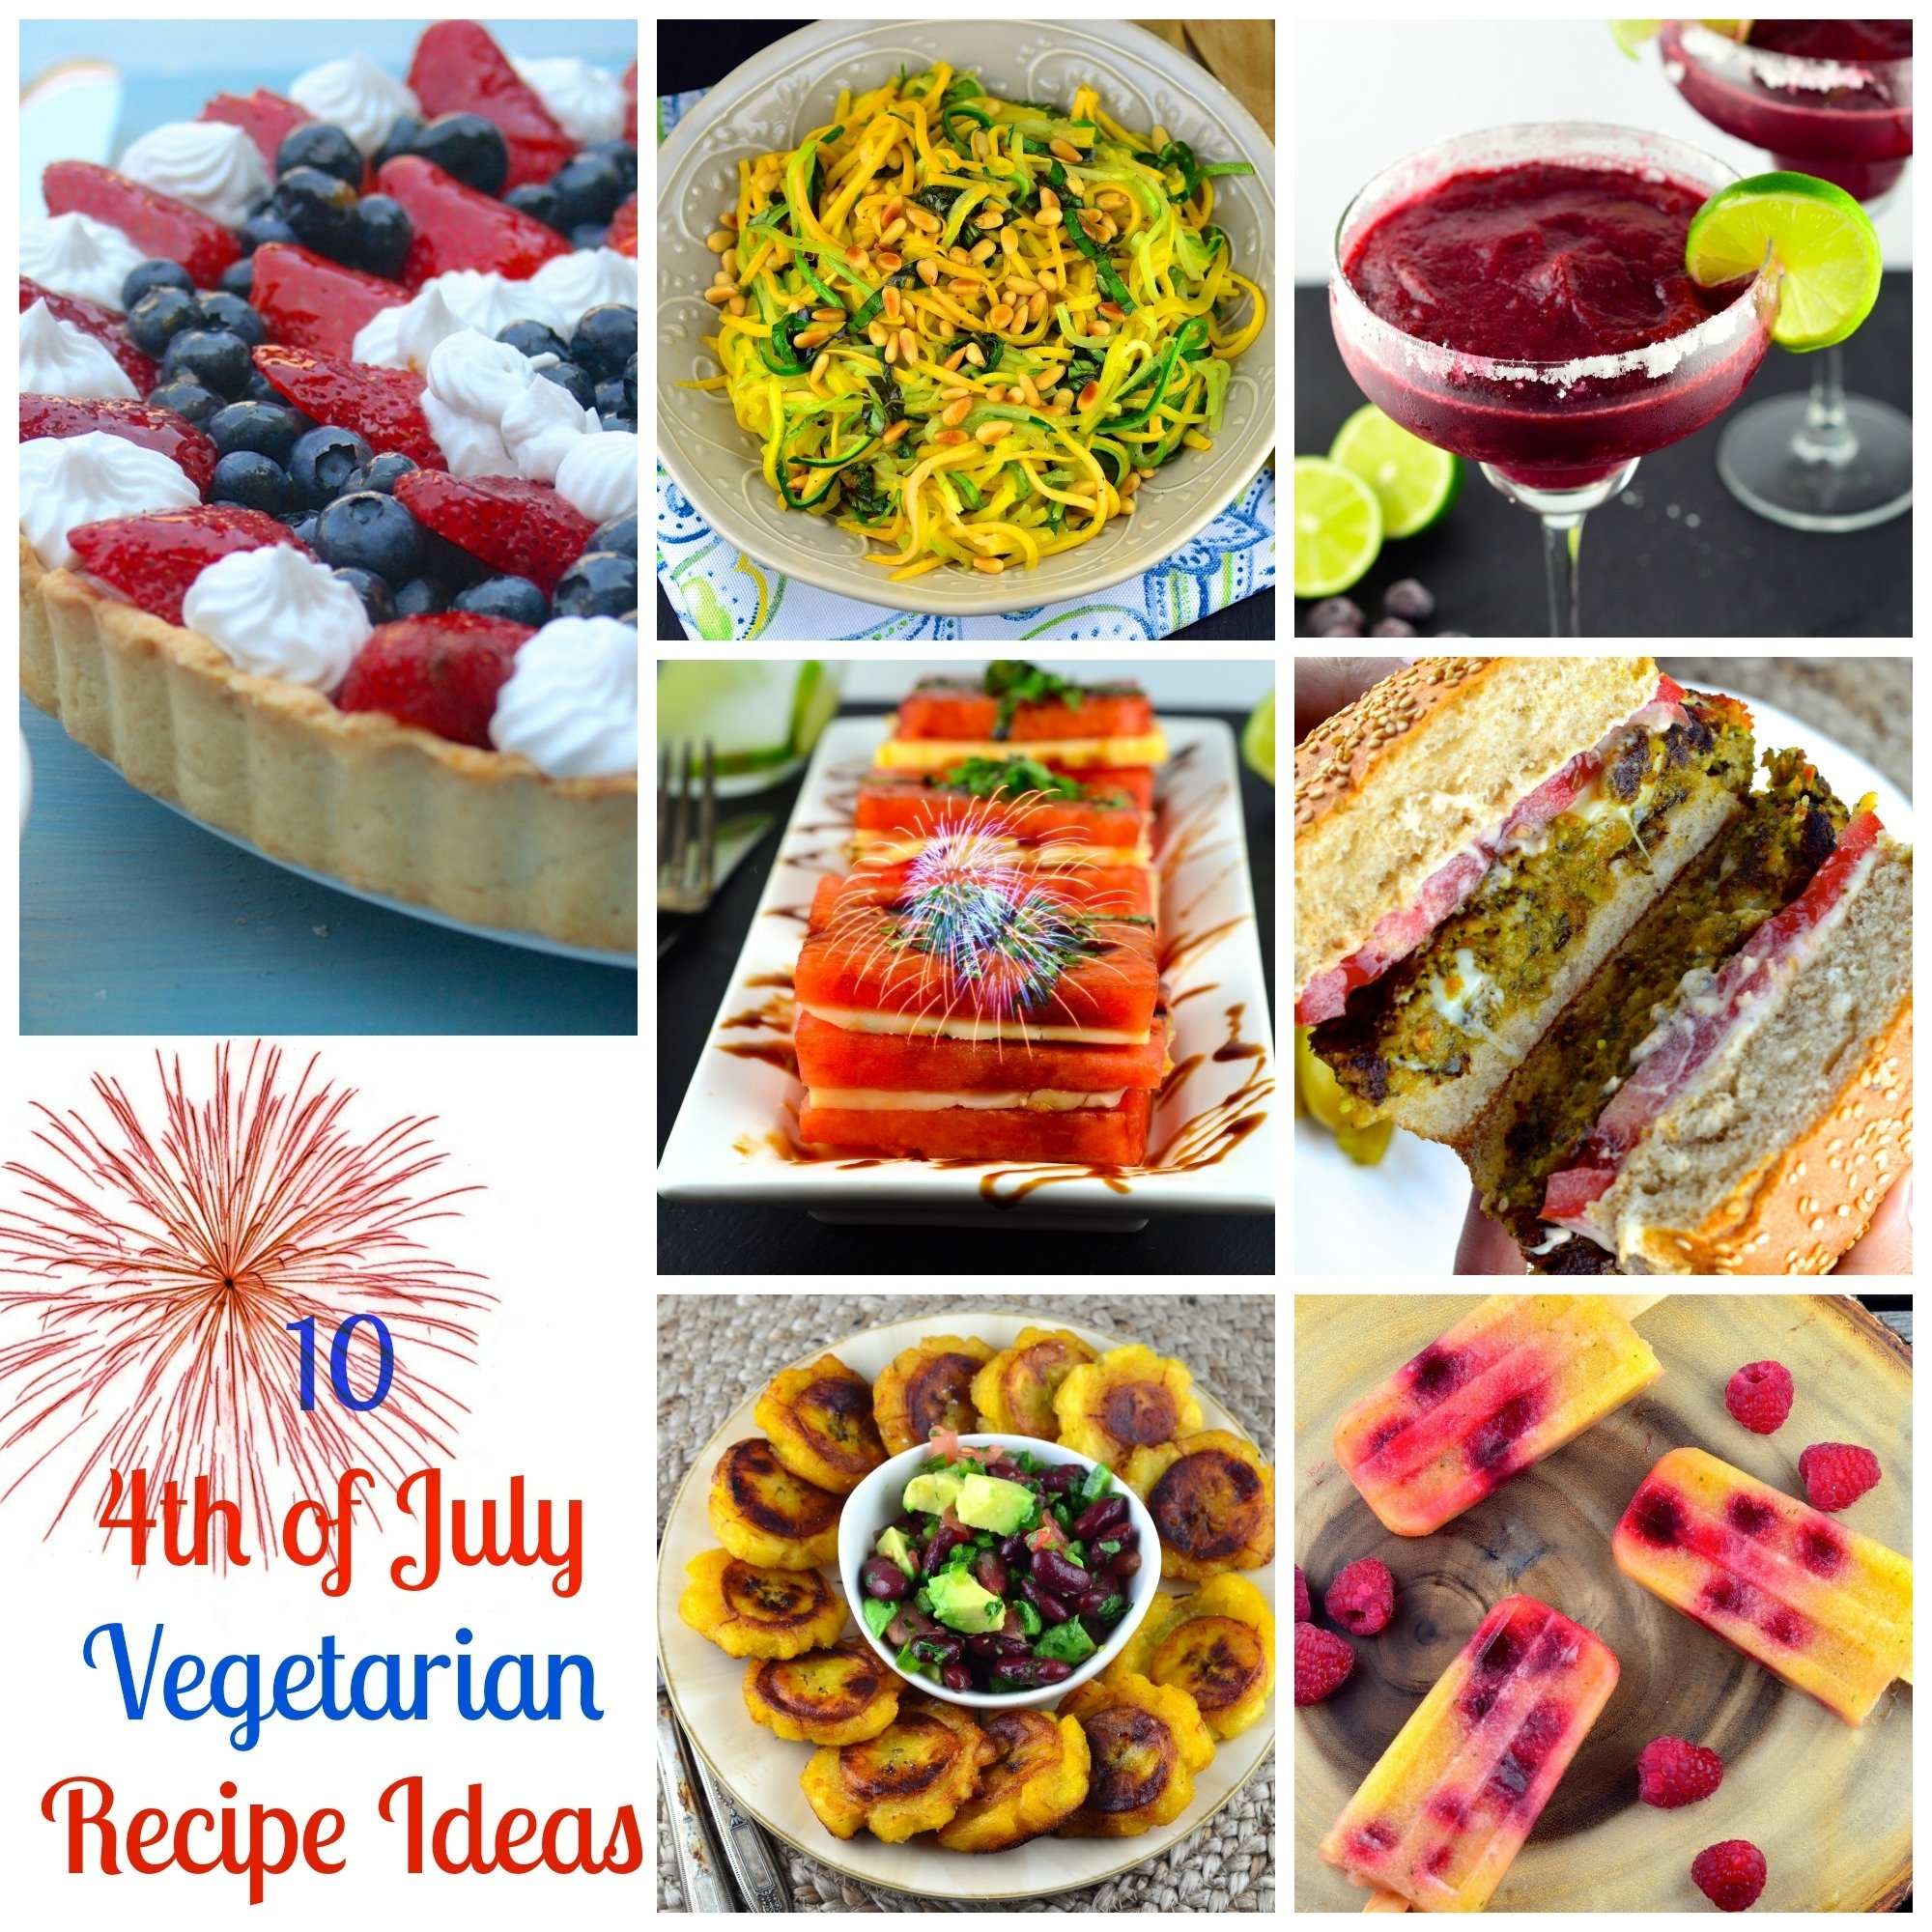 10 Most Recommended 4Th Of July Recipe Ideas ten 4th of july vegetarian recipe ideas 2020